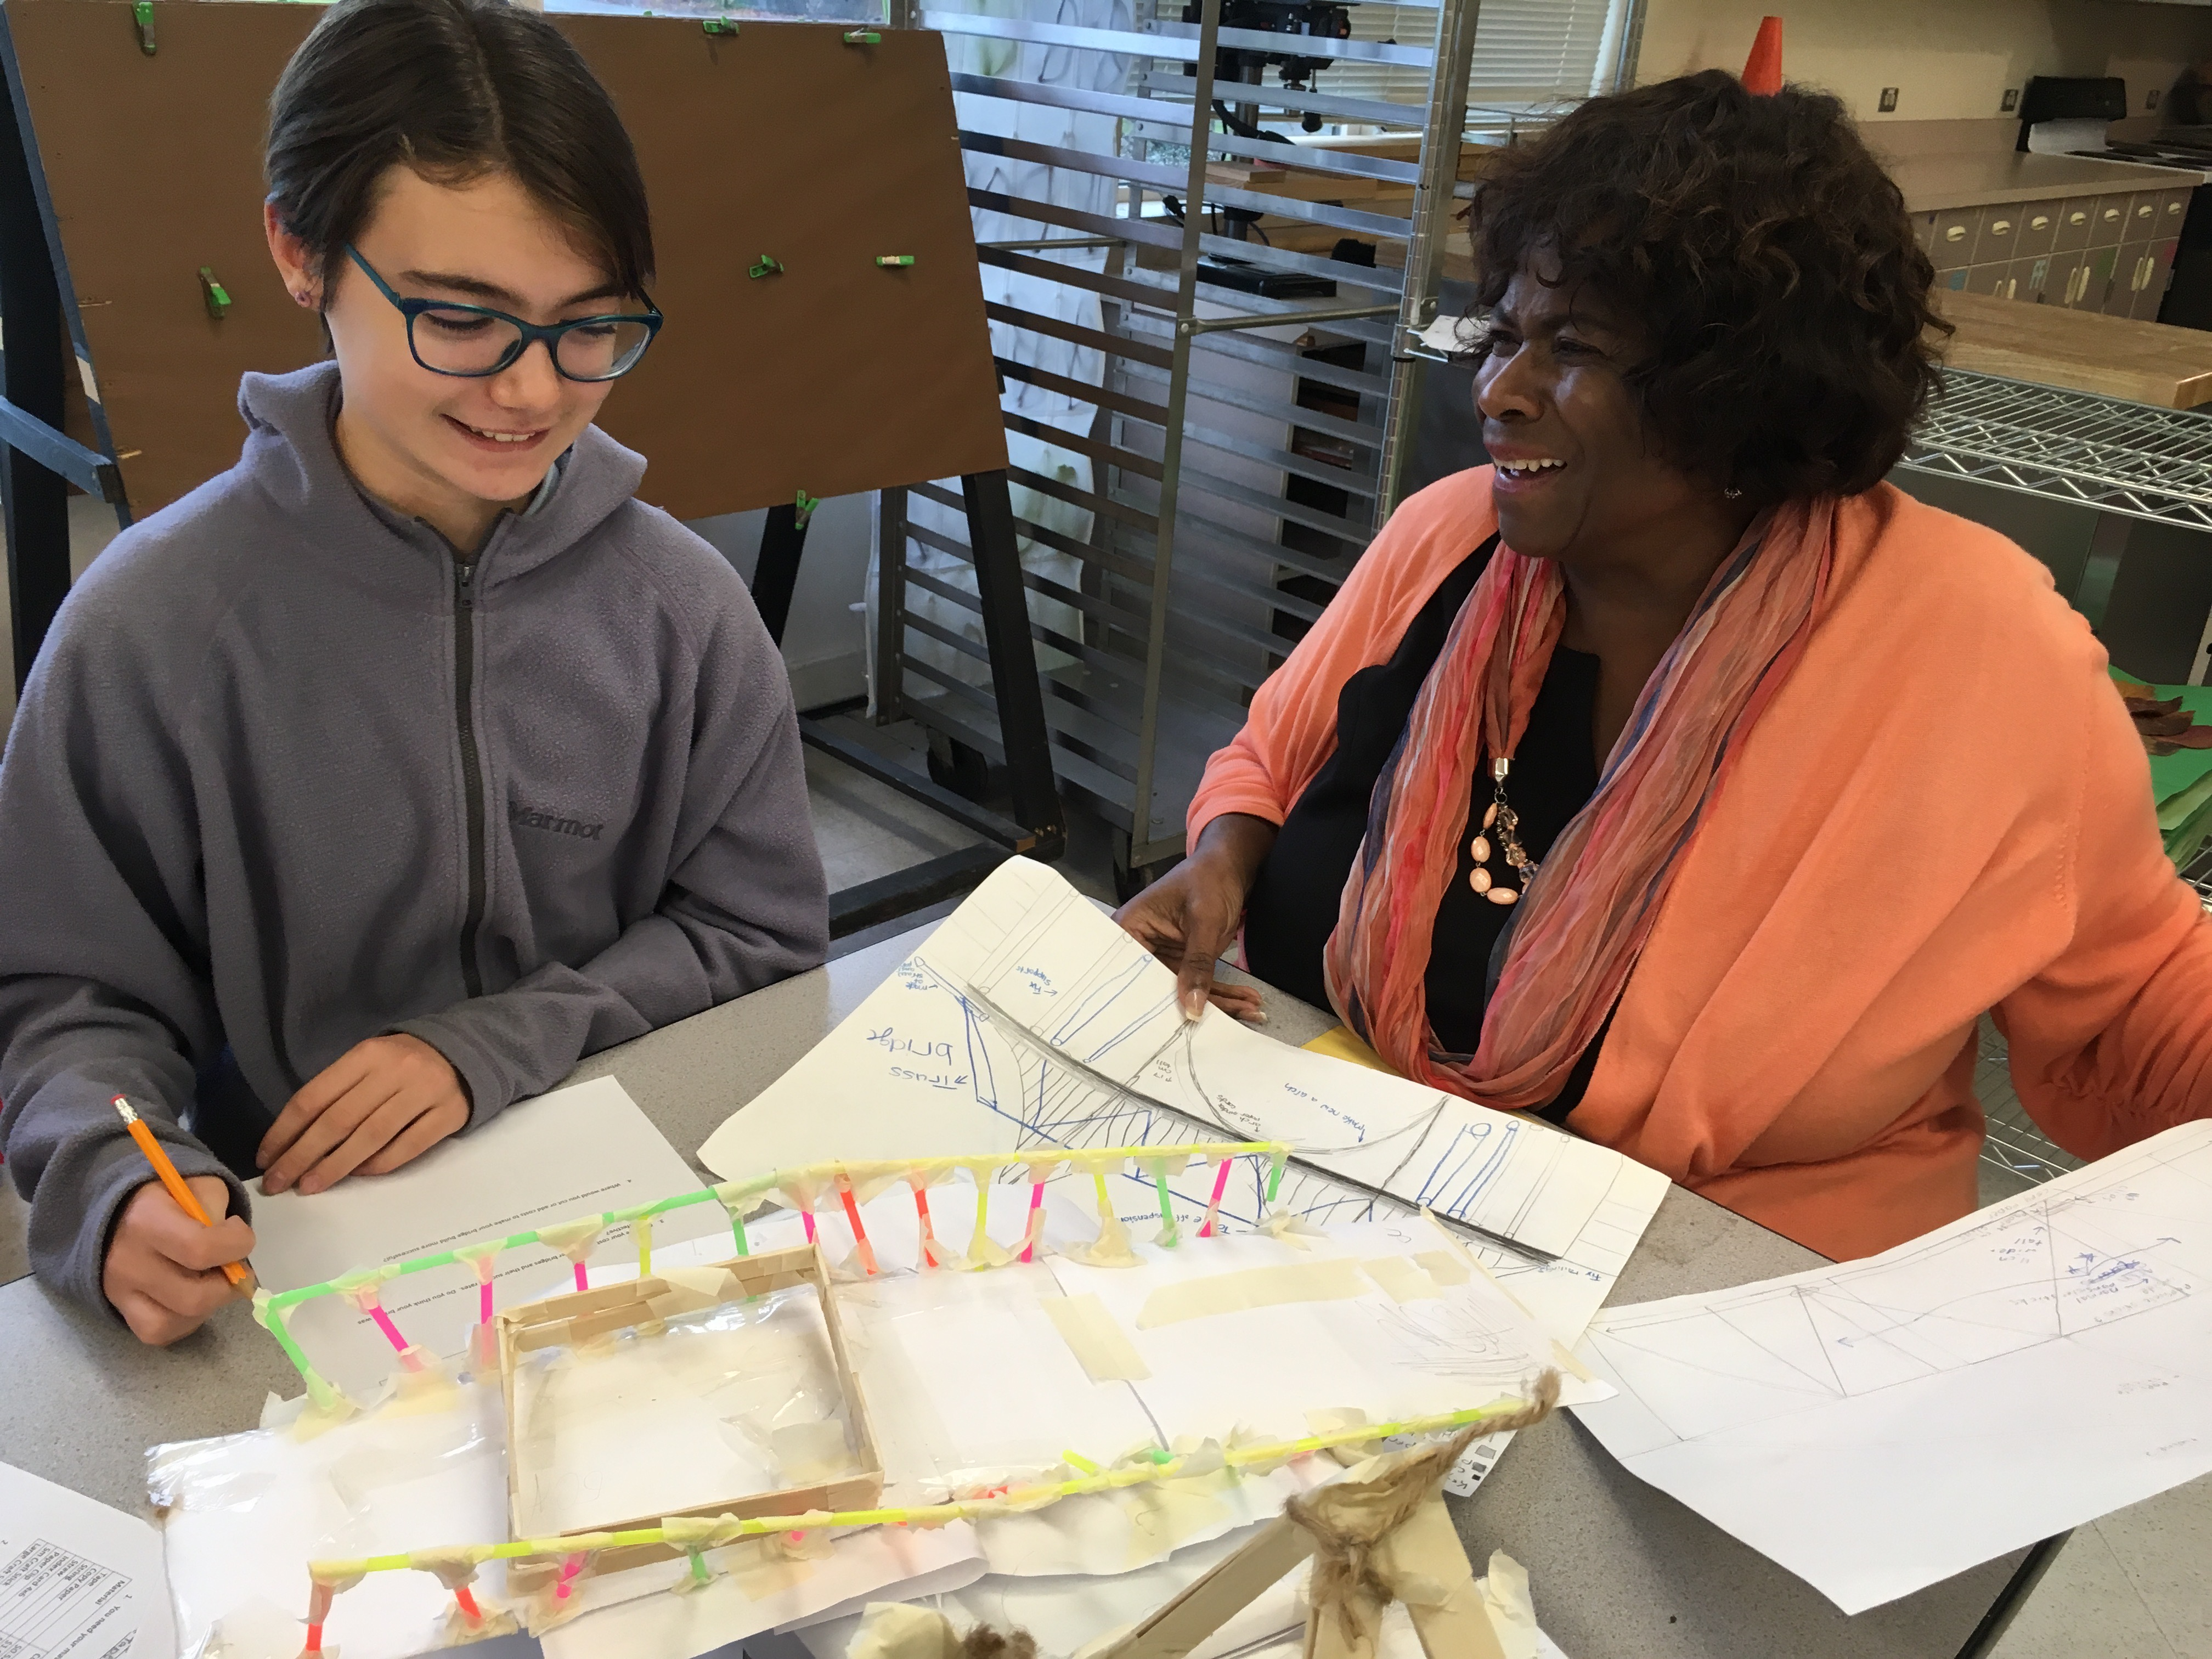 Superintendent Carla Santorno discusses a makerspace project with a student at Sherman Elementary School in Tacoma, Washington.